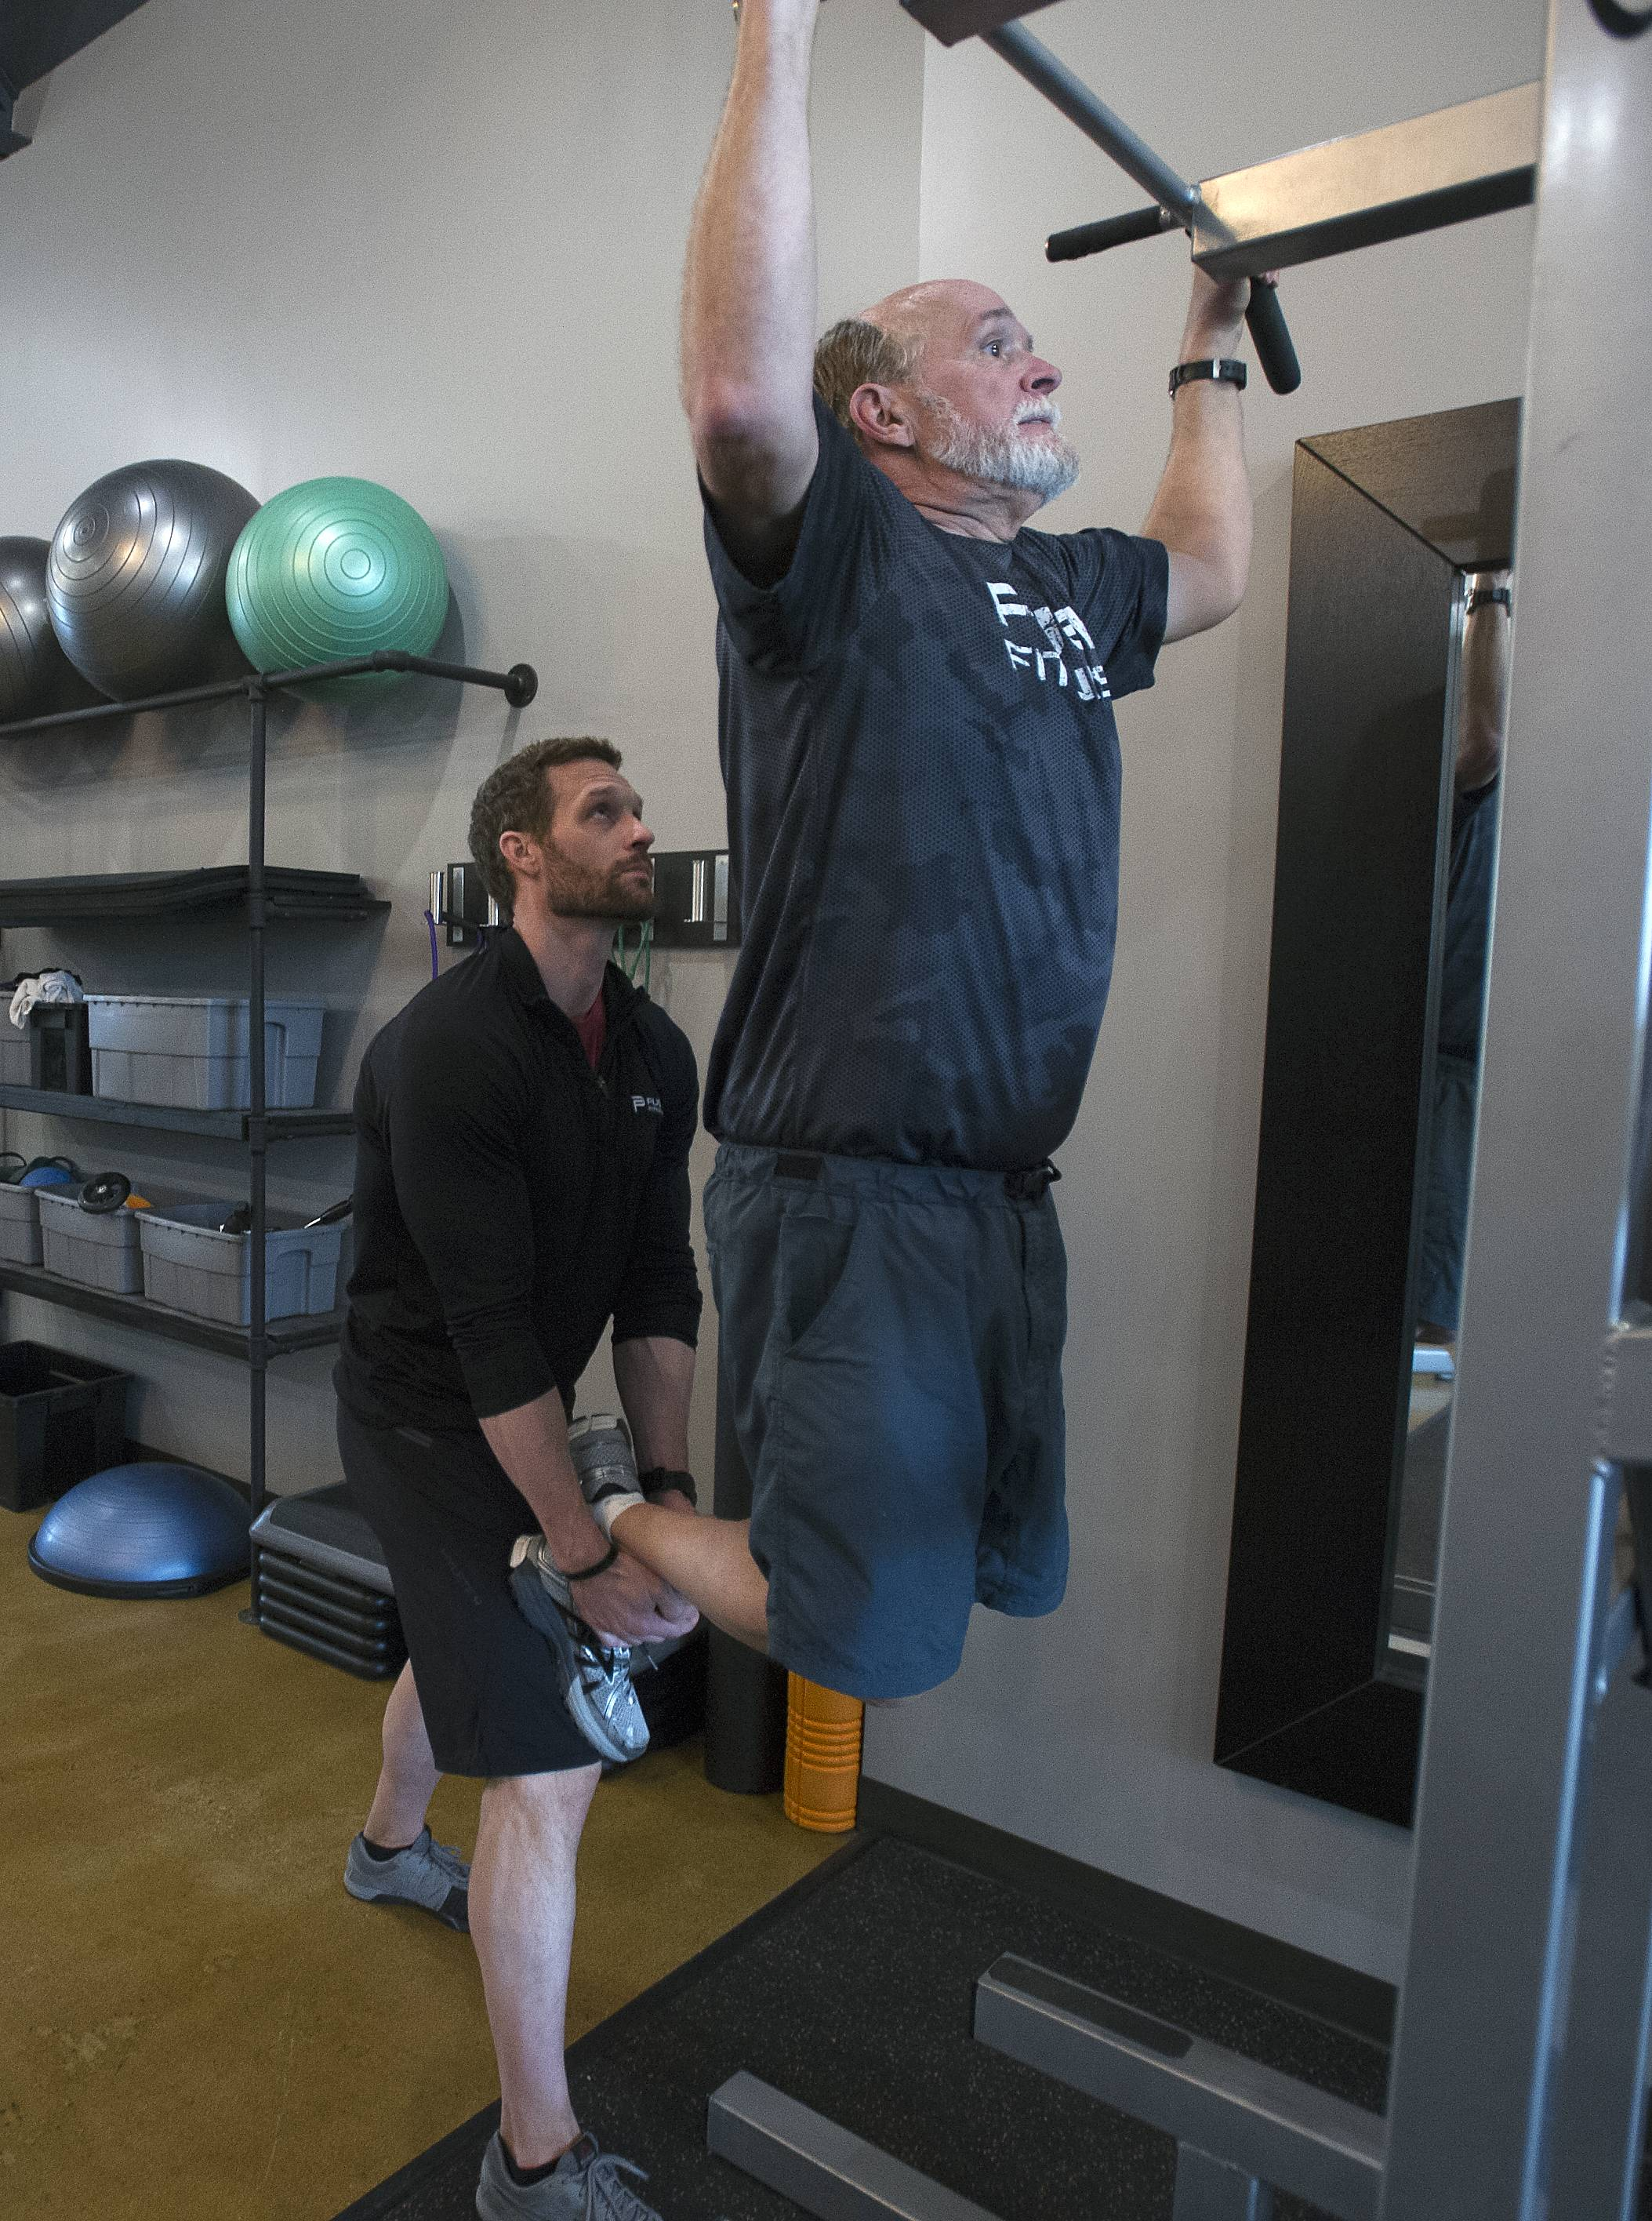 Russ Page of Antioch shows off his dramatic weight loss of almost 50 pounds after many weeks at Push Fitness in Schaumburg. He does a series of pull ups with his trainer Josh Steckler, owner of Push Fitness.